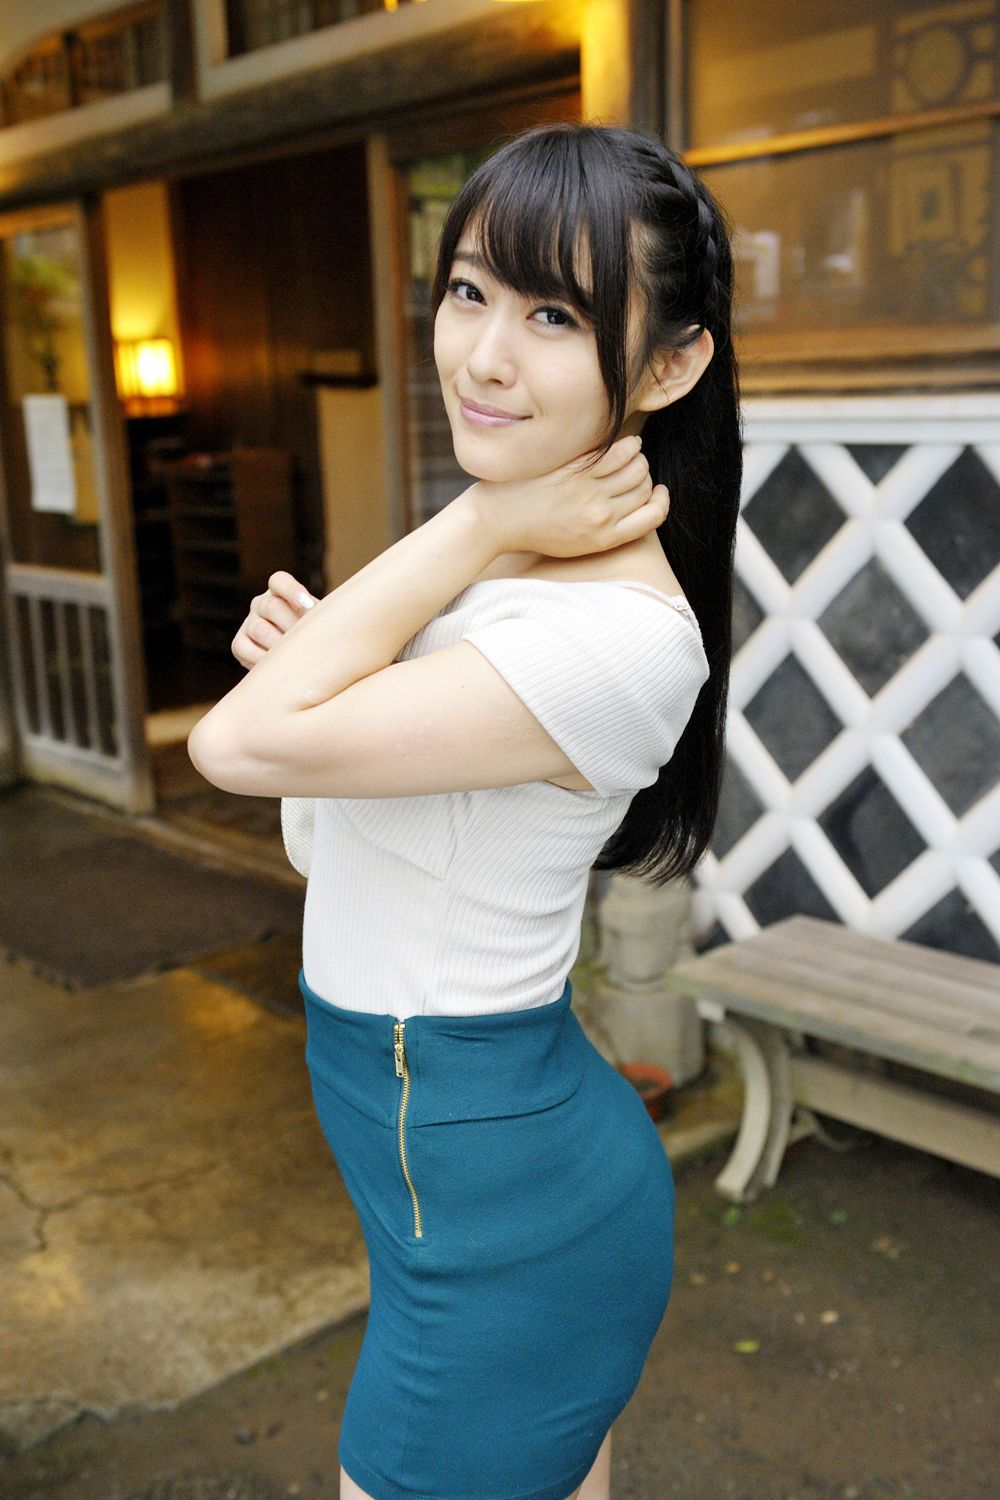 All Gravure   Japanese model pictures for free